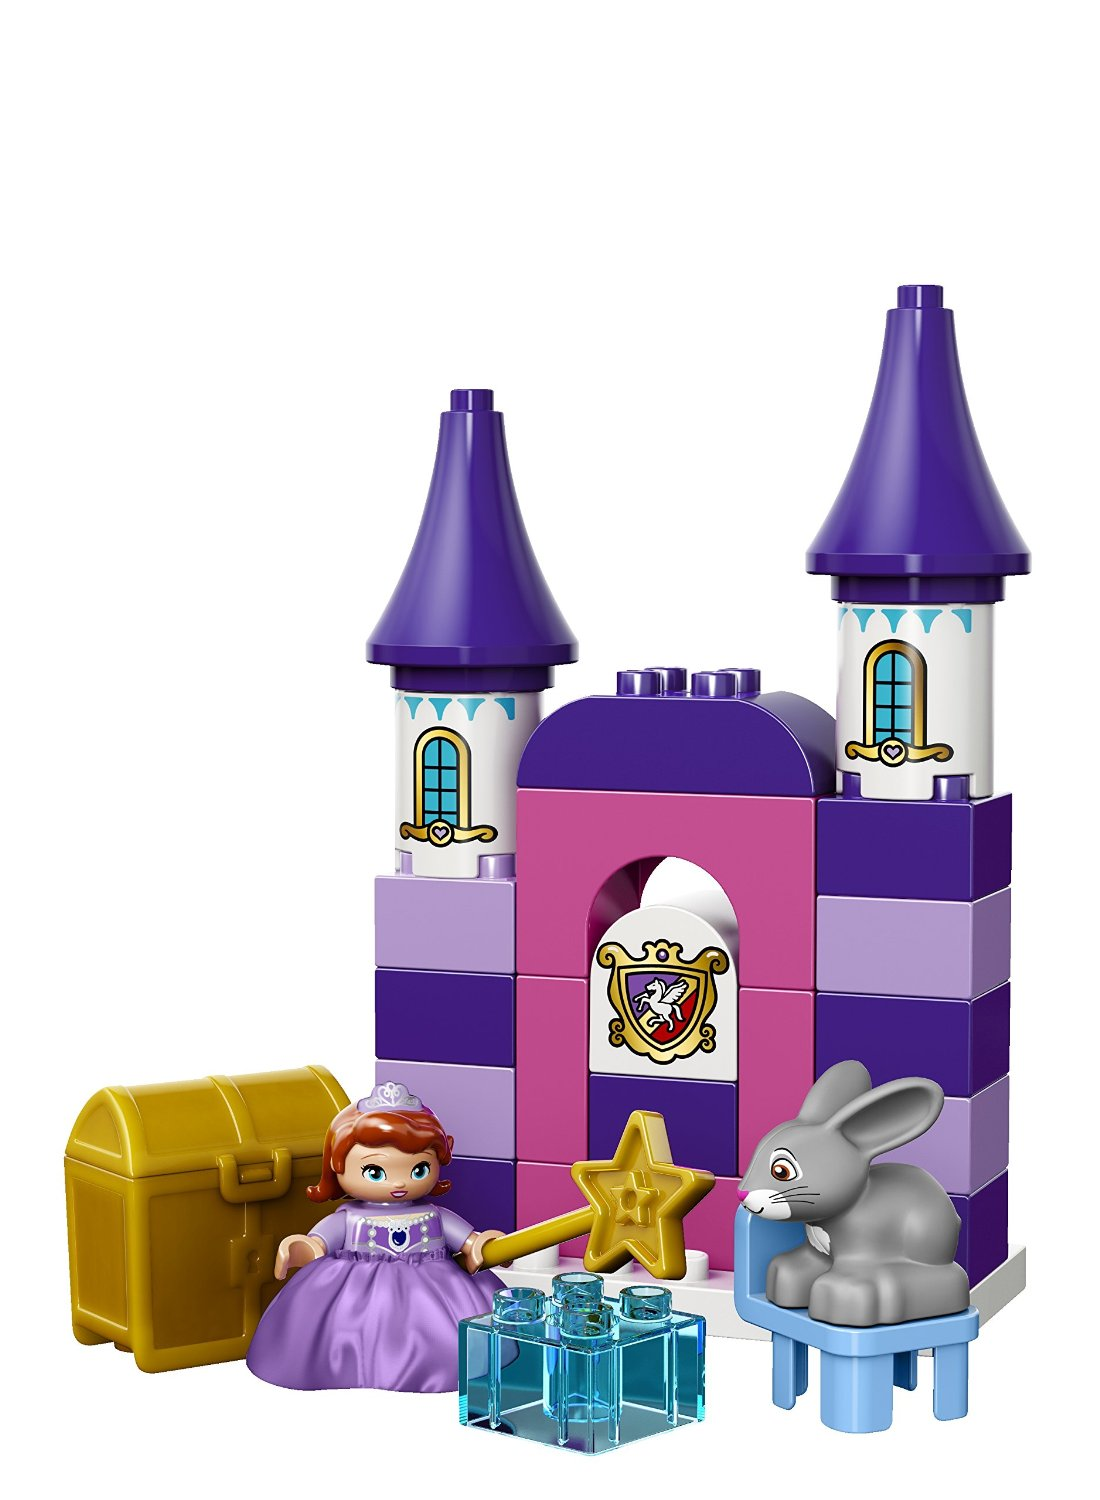 Sofia the First Royal Castle 10595 4